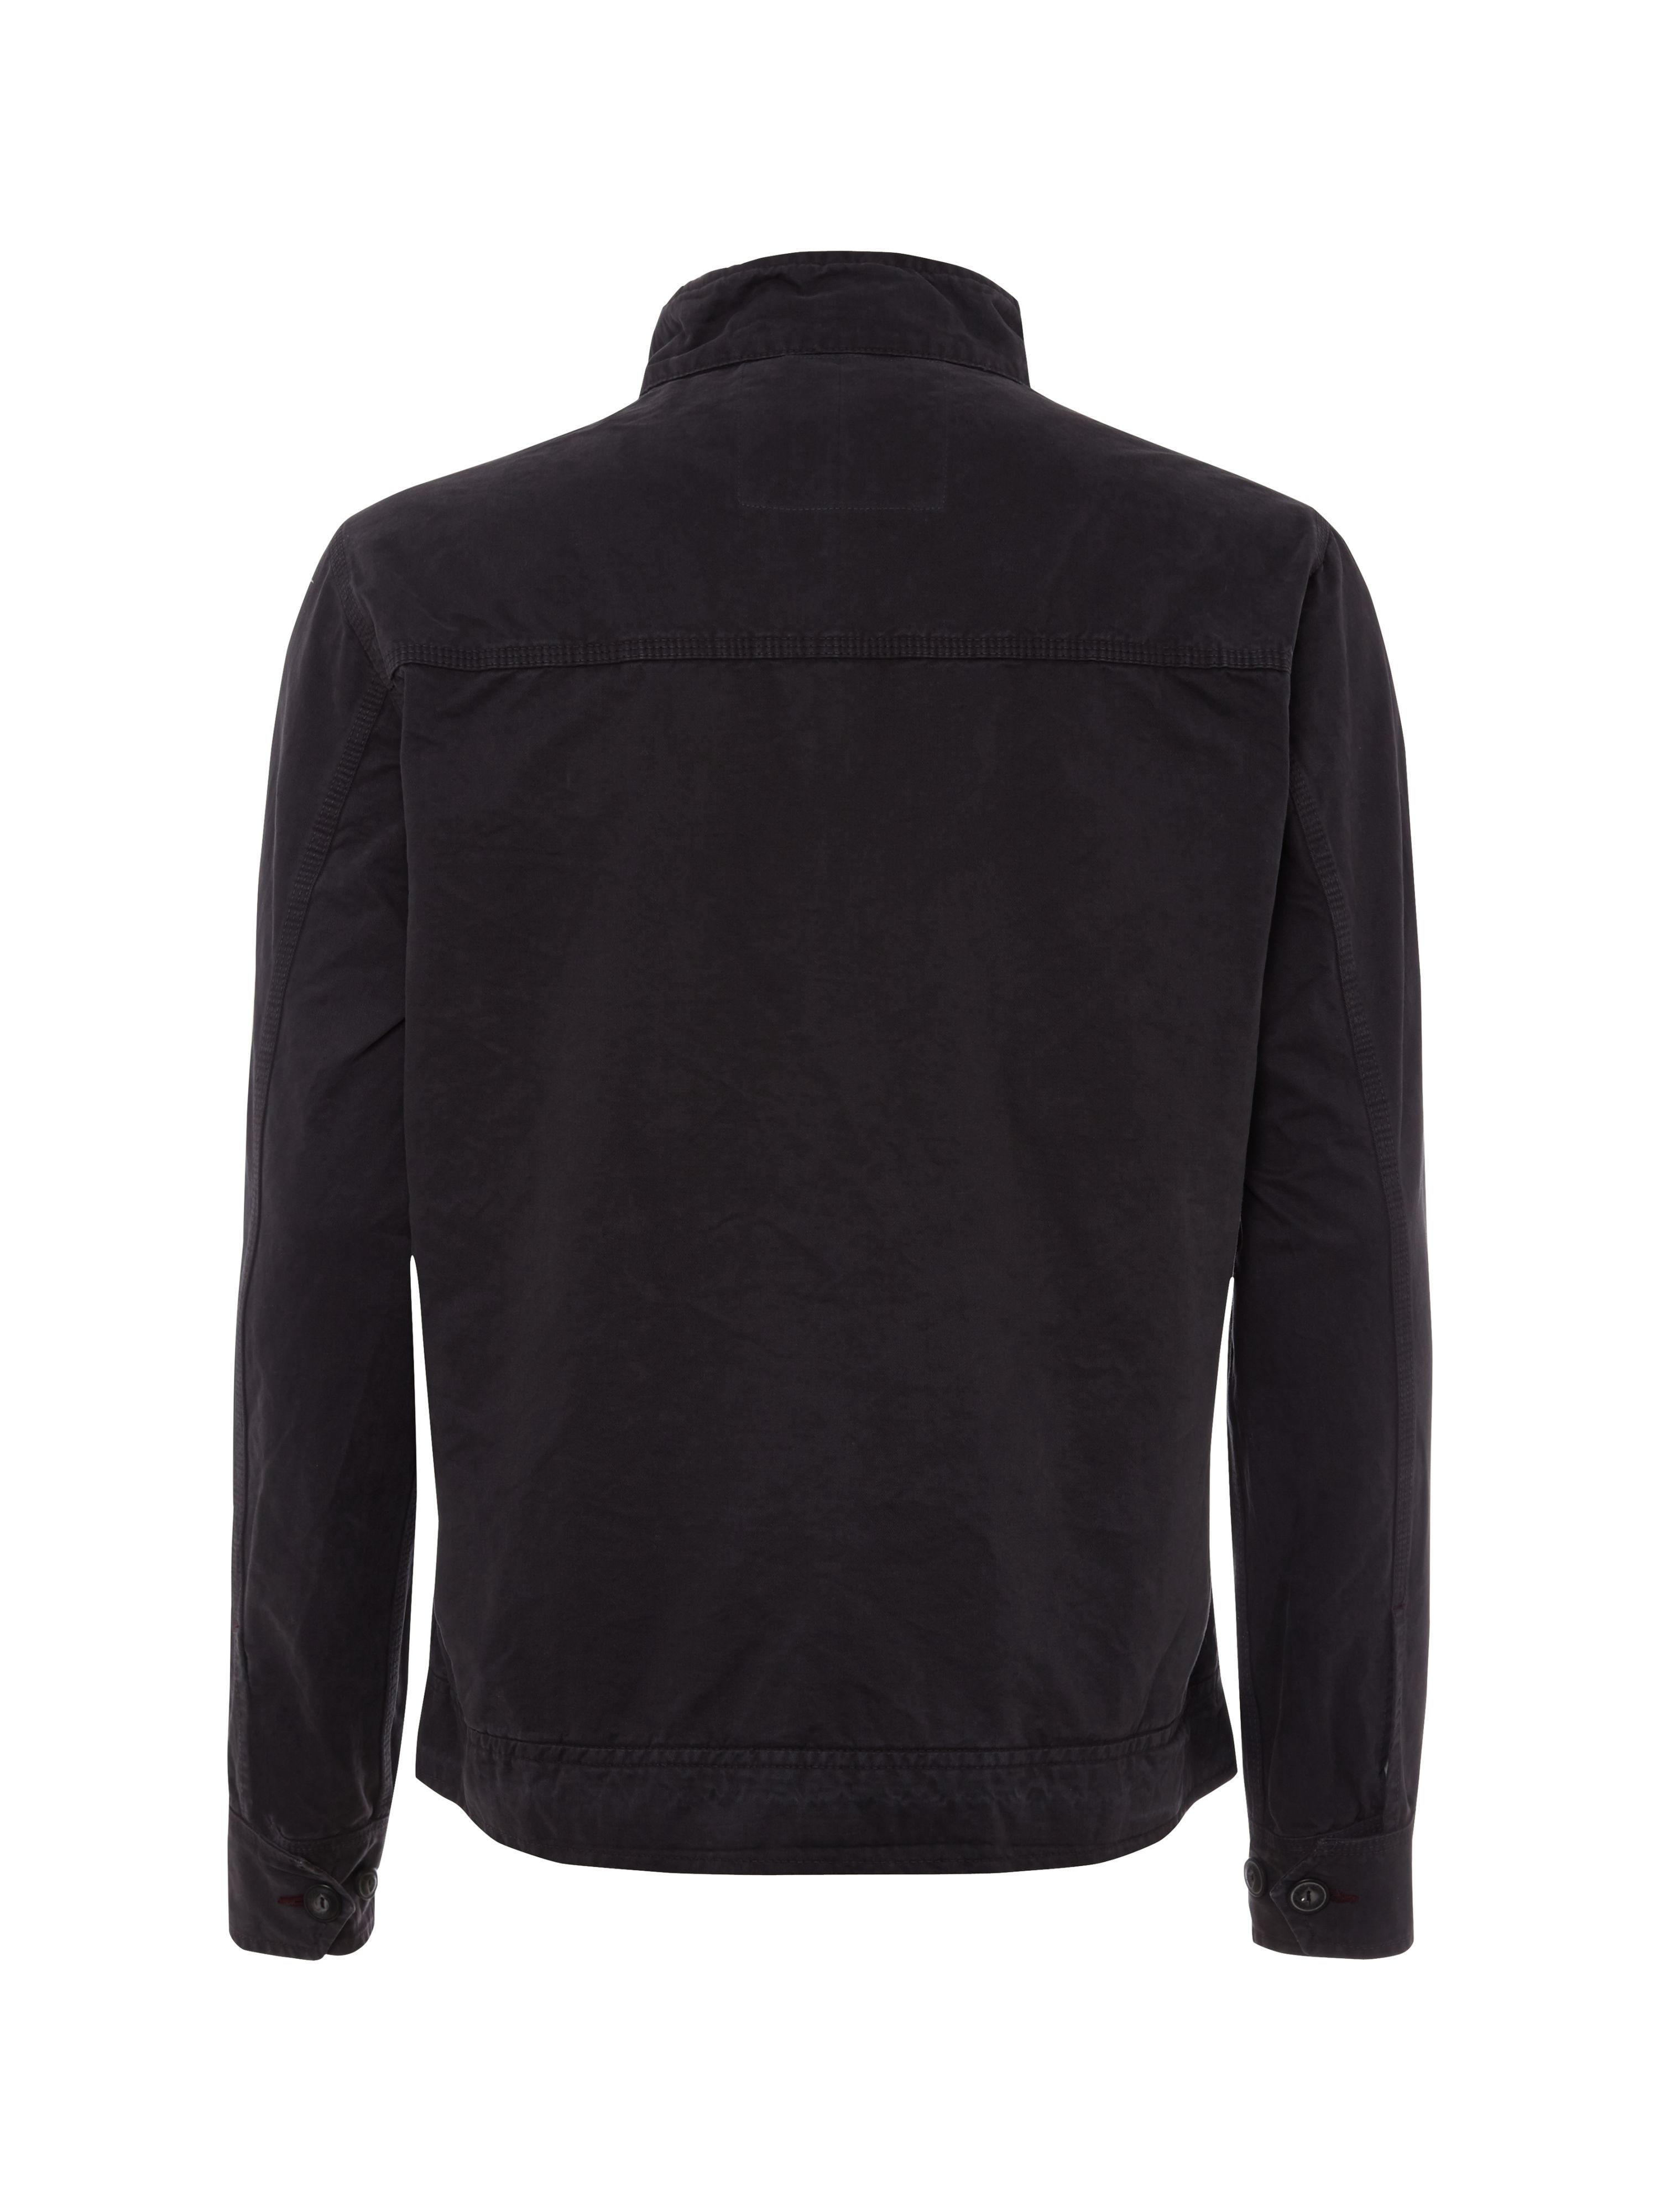 Balham casual zip jacket